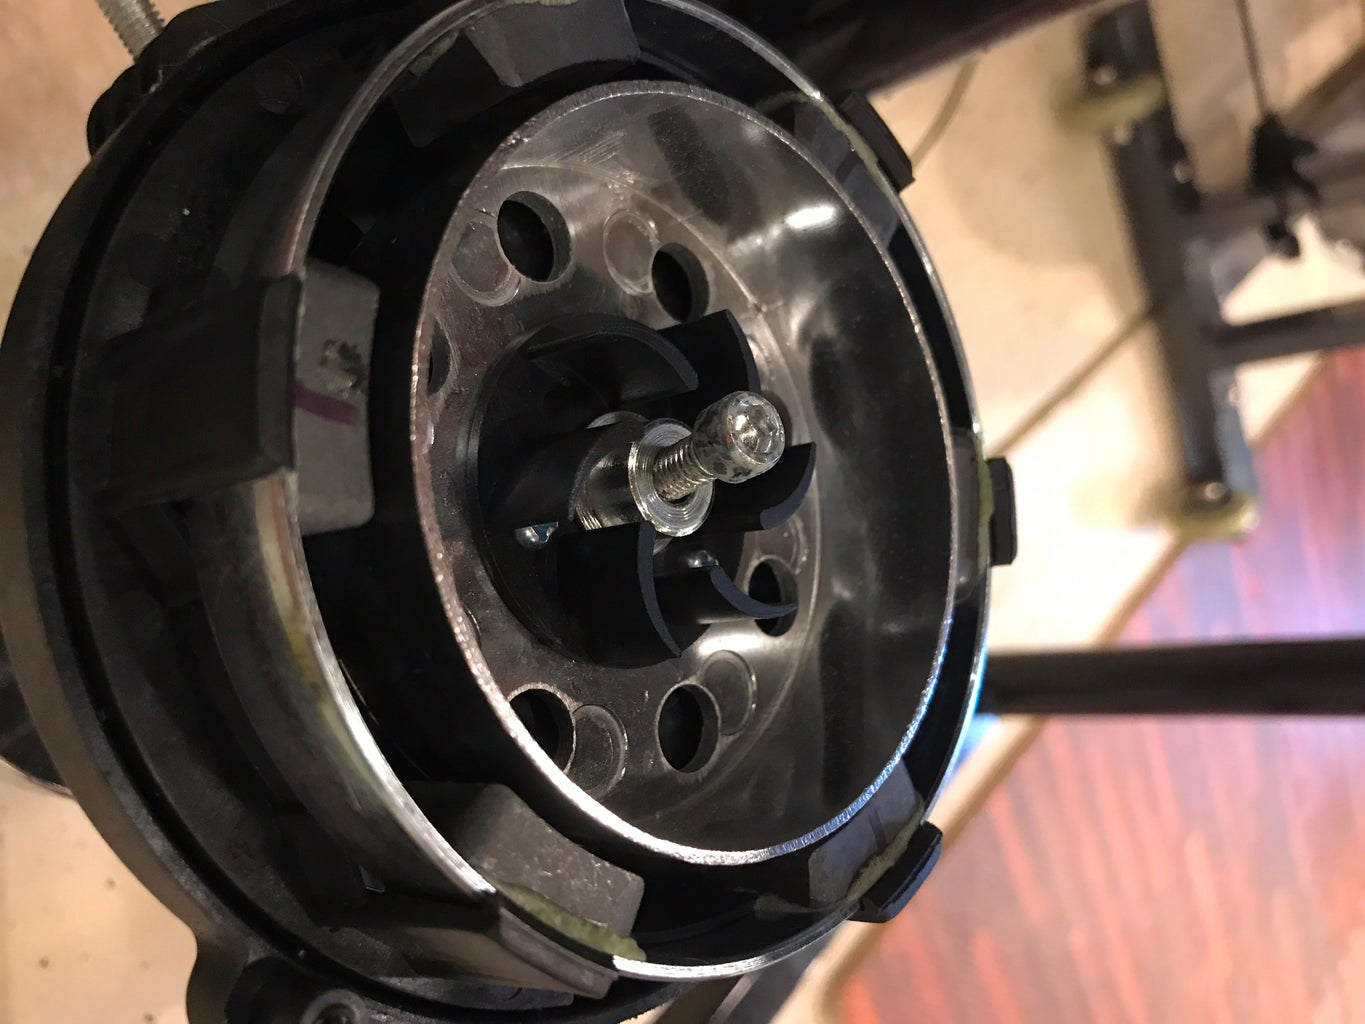 Remove Magnetic Resistance Parts From Trainer